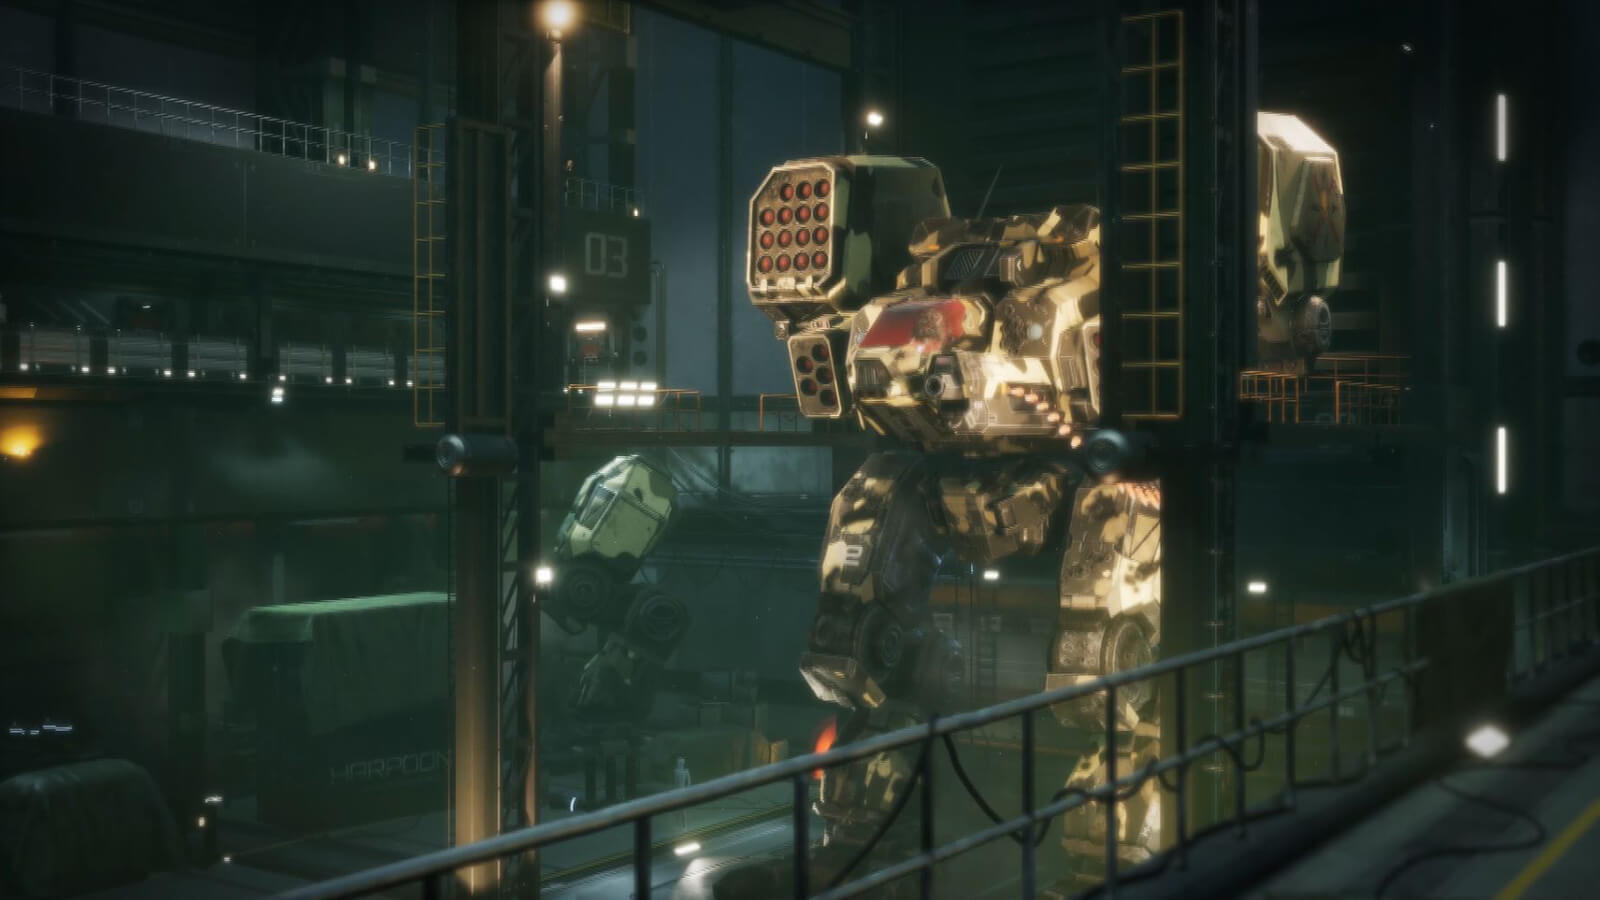 A gigantic armored battle mech stands in a hangar.